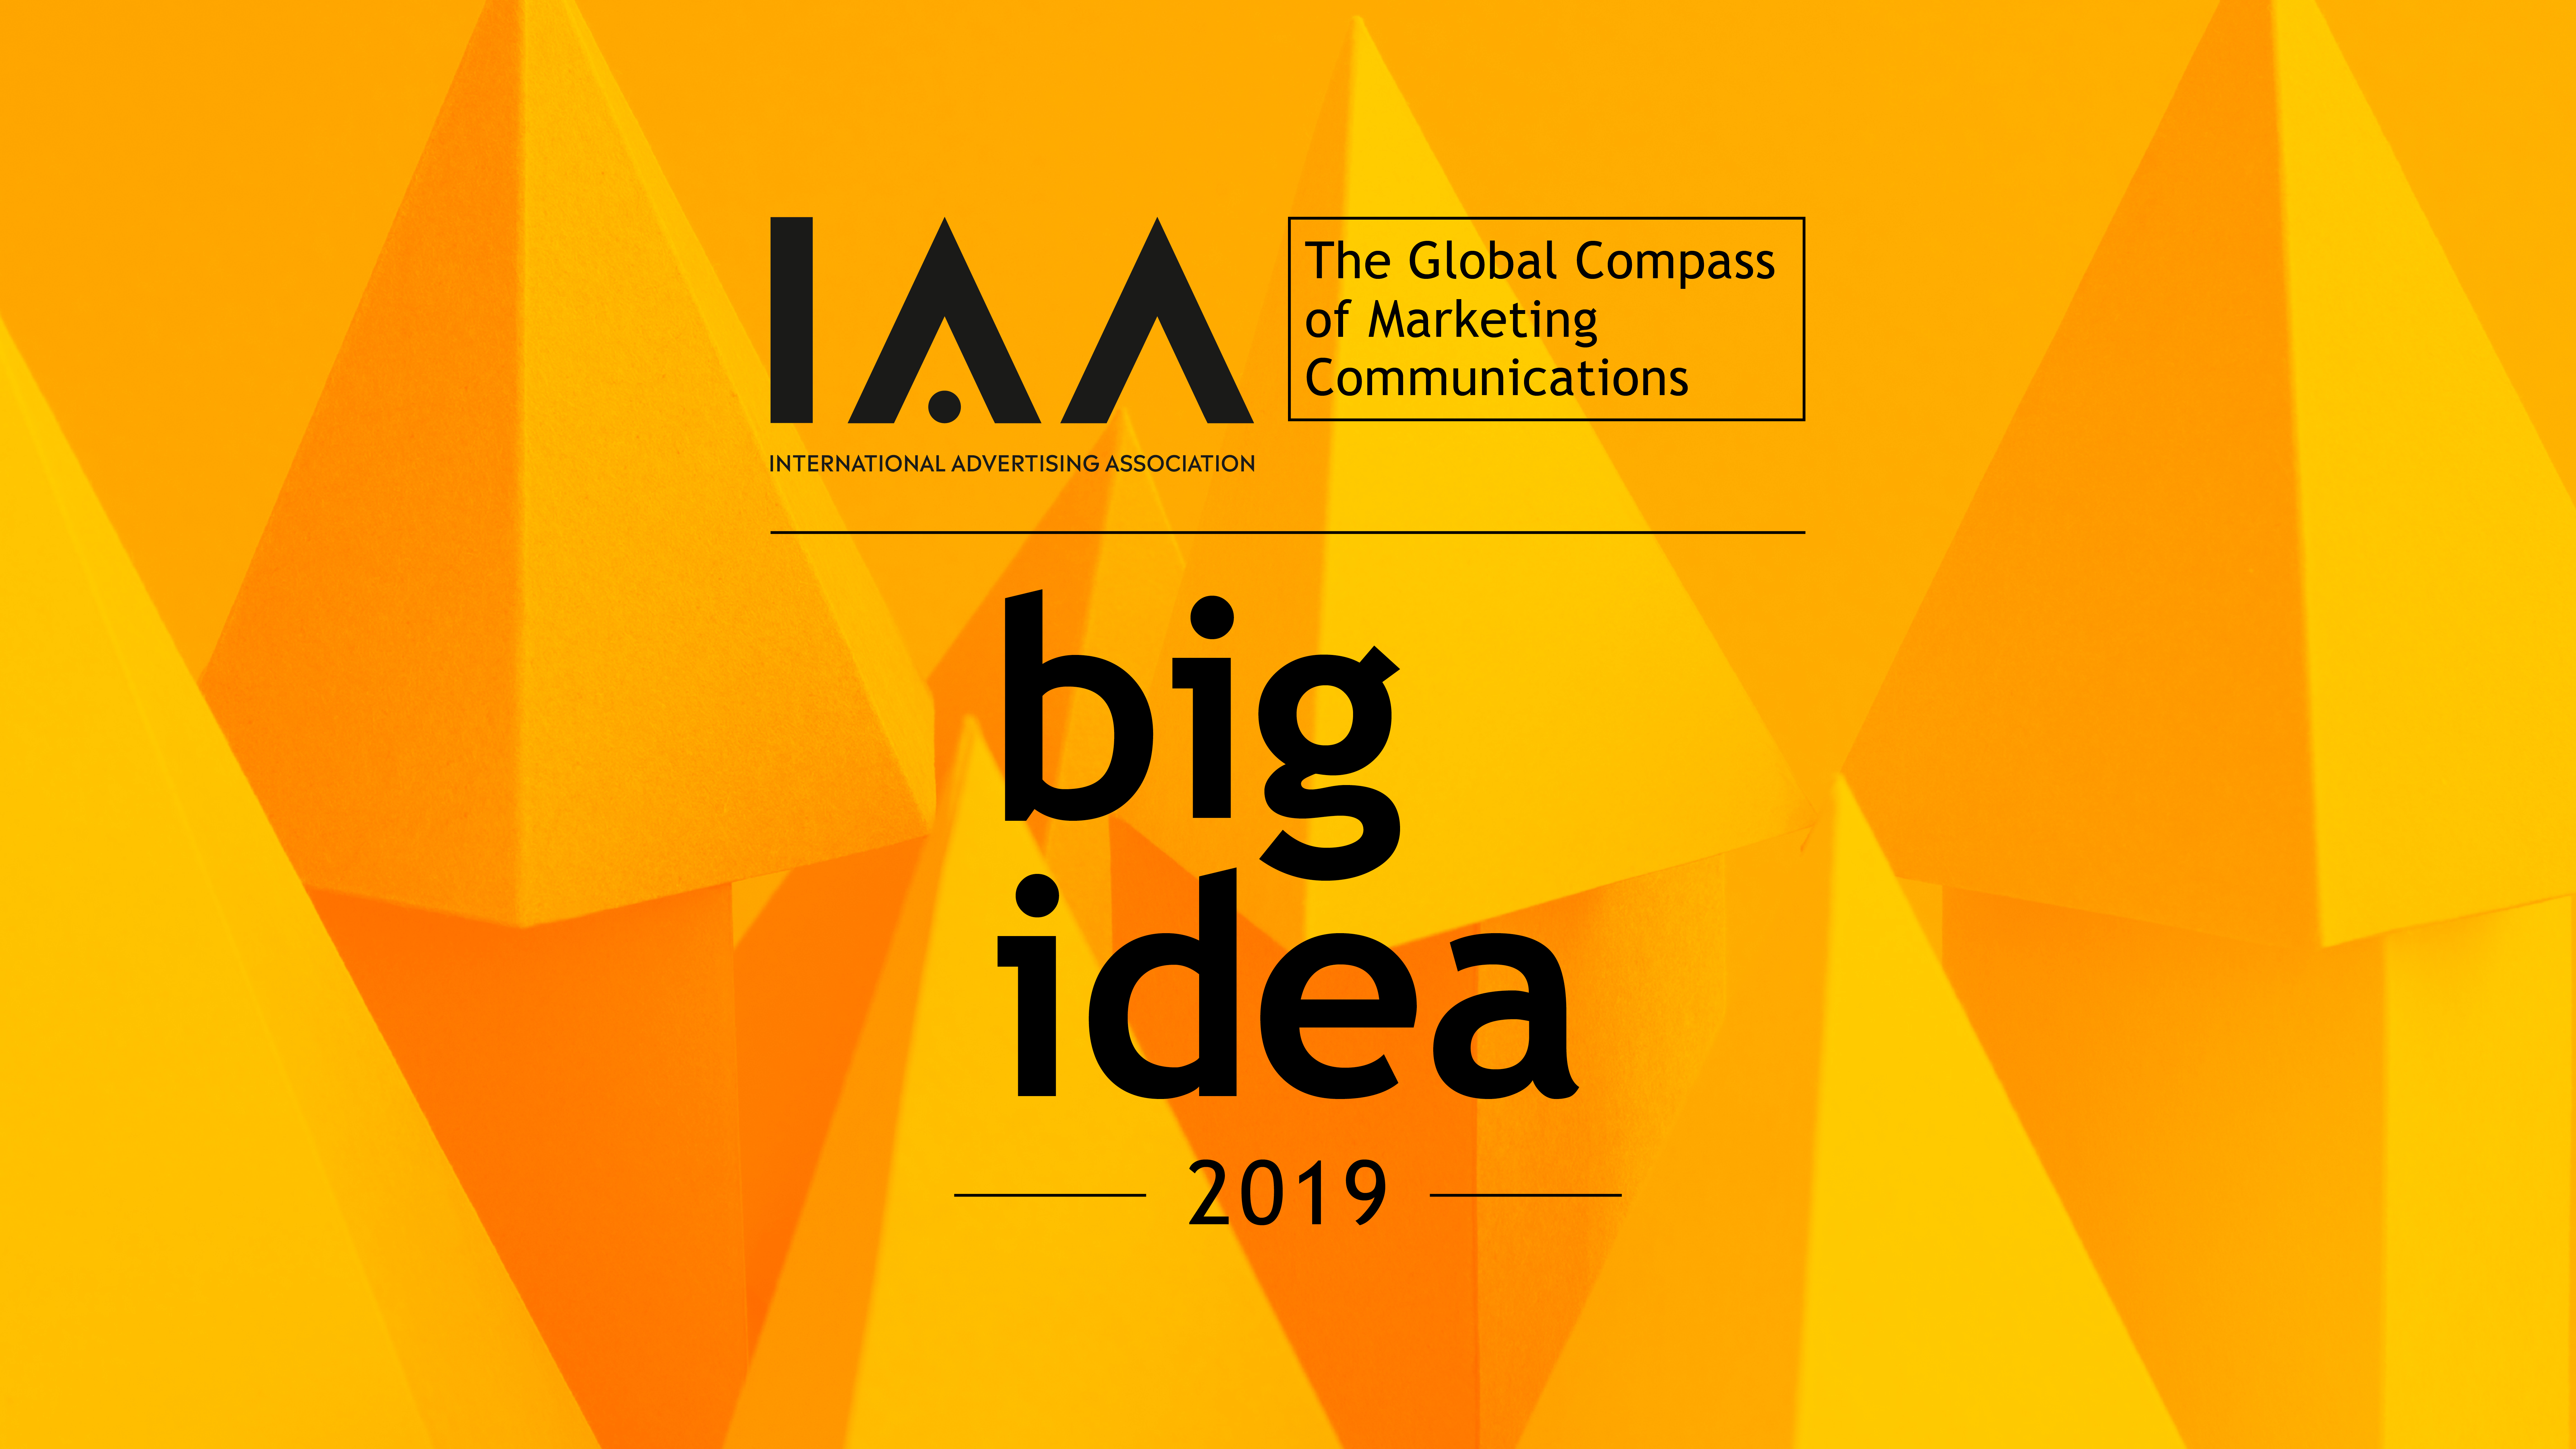 Iaa 'Big Idea' Winners Tackle Coca-Cola's Recycling Sustainability Project